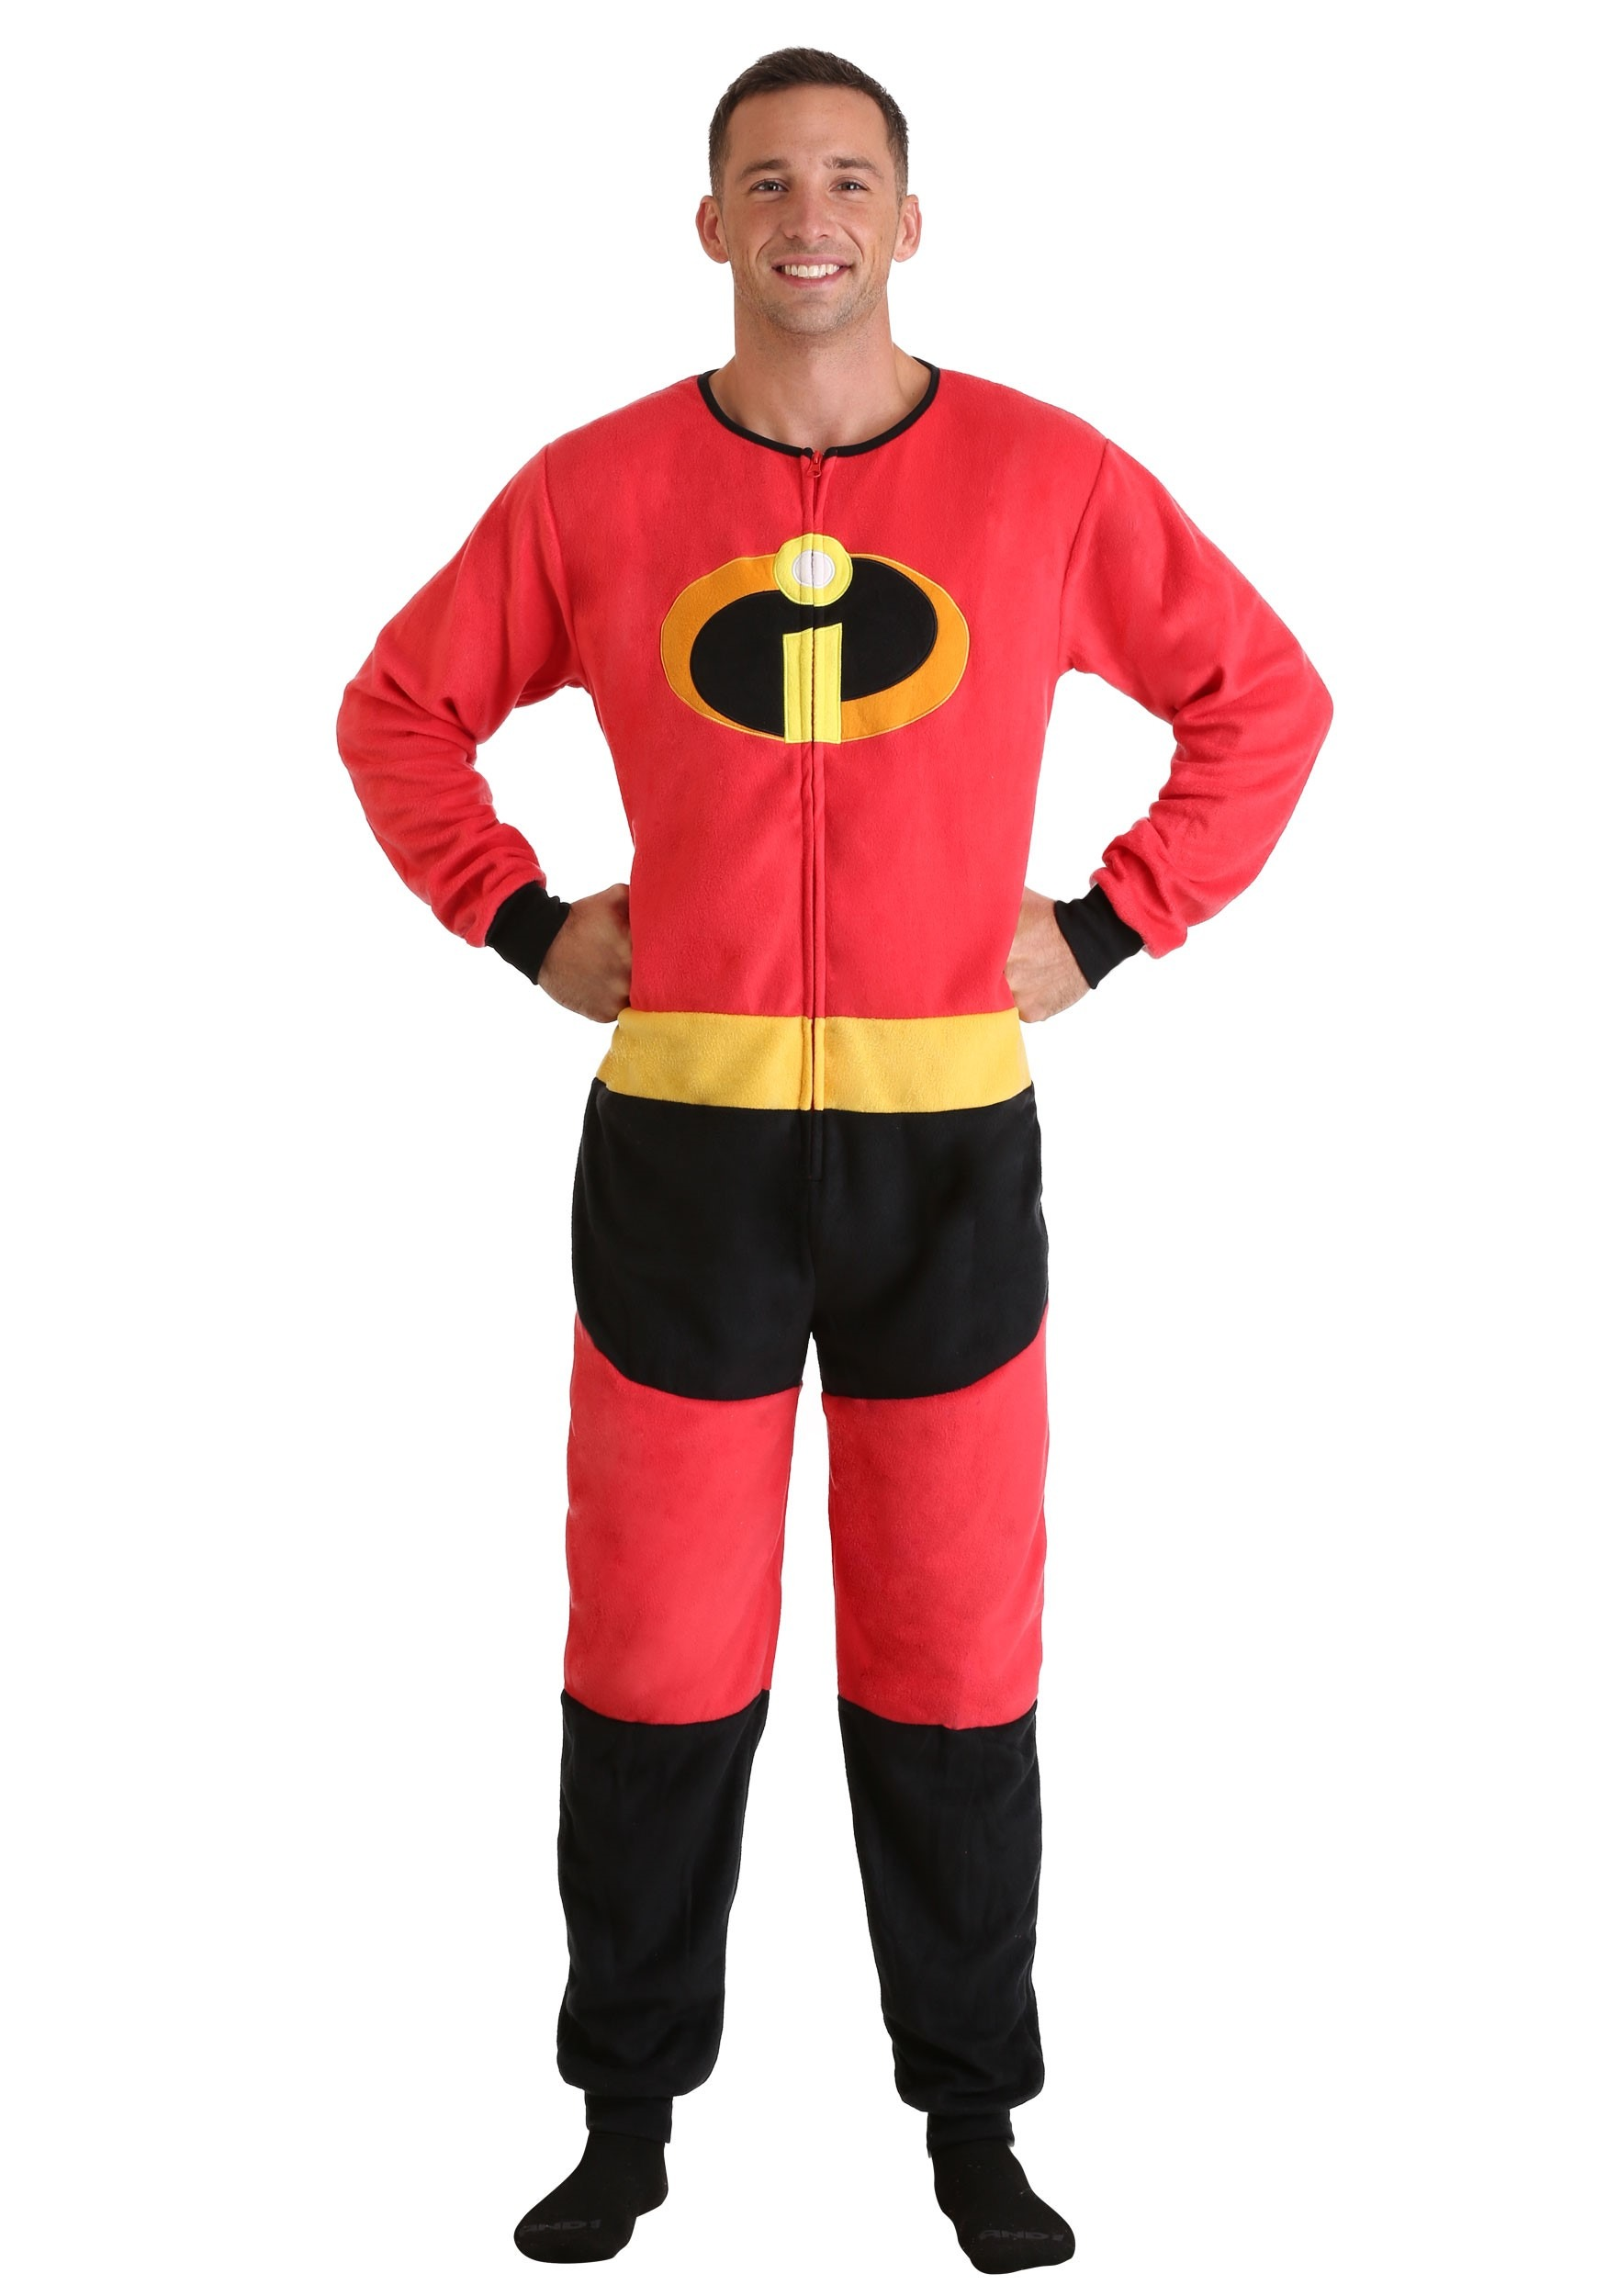 Adult Mr. Incredible Union Suit from The Incredibles